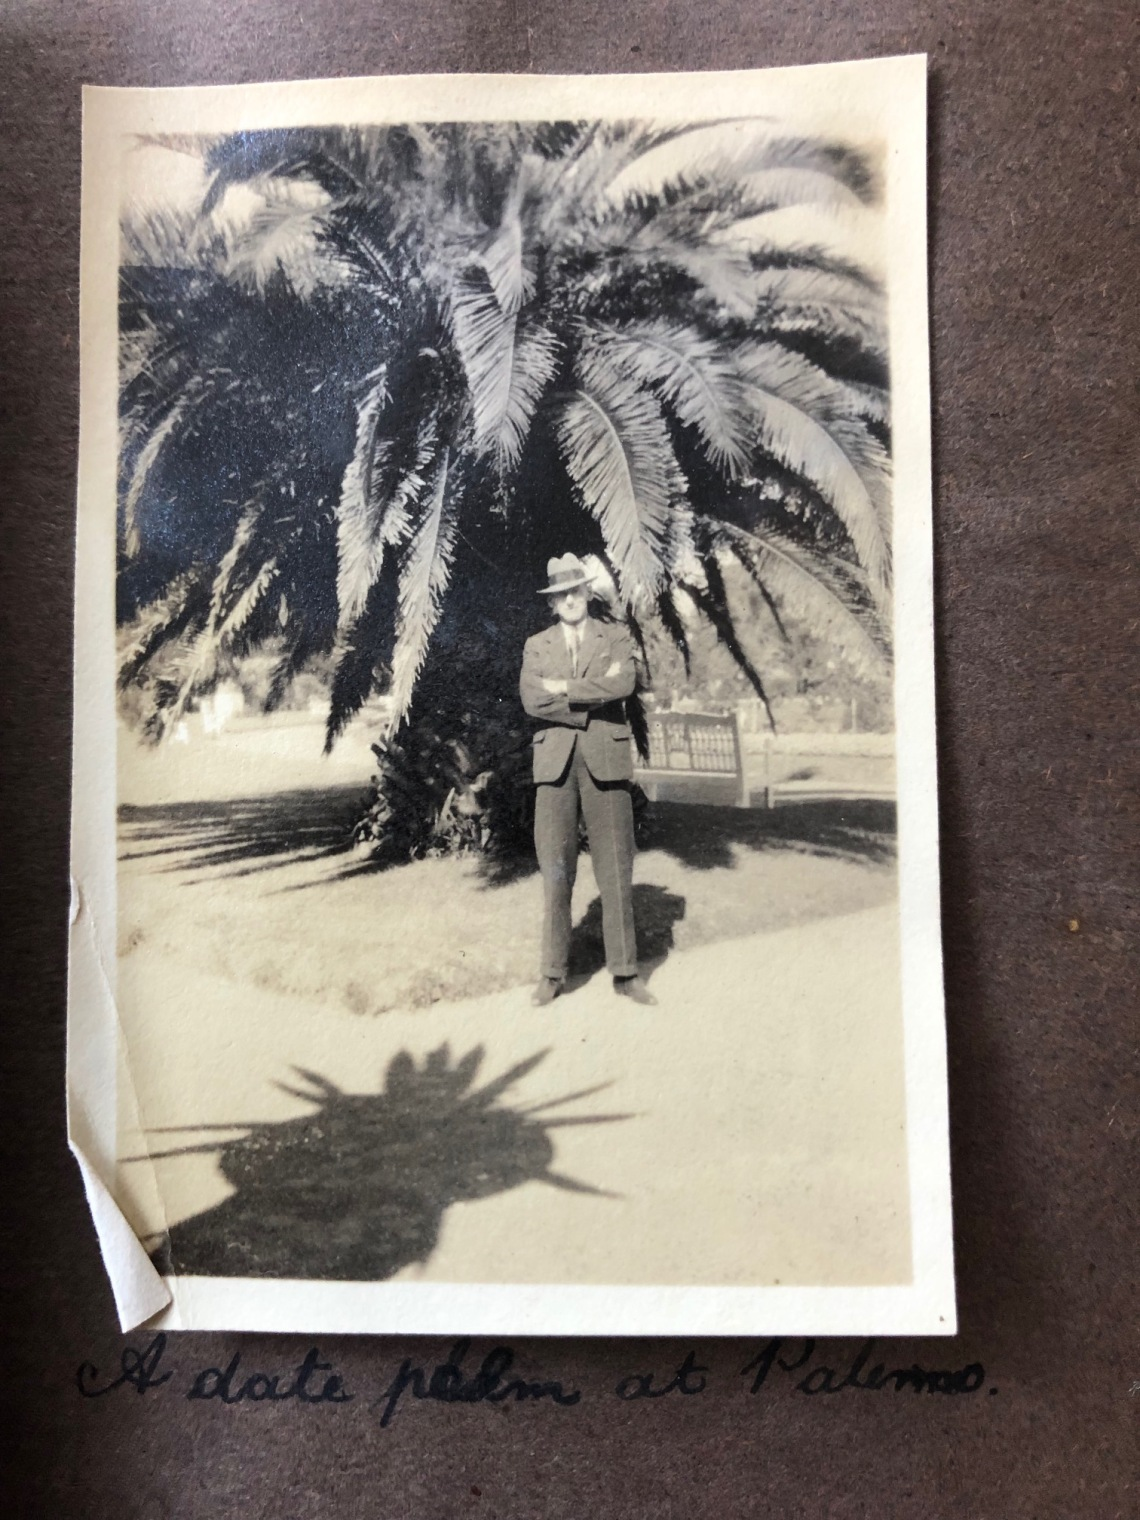 A Date Palm at palermo